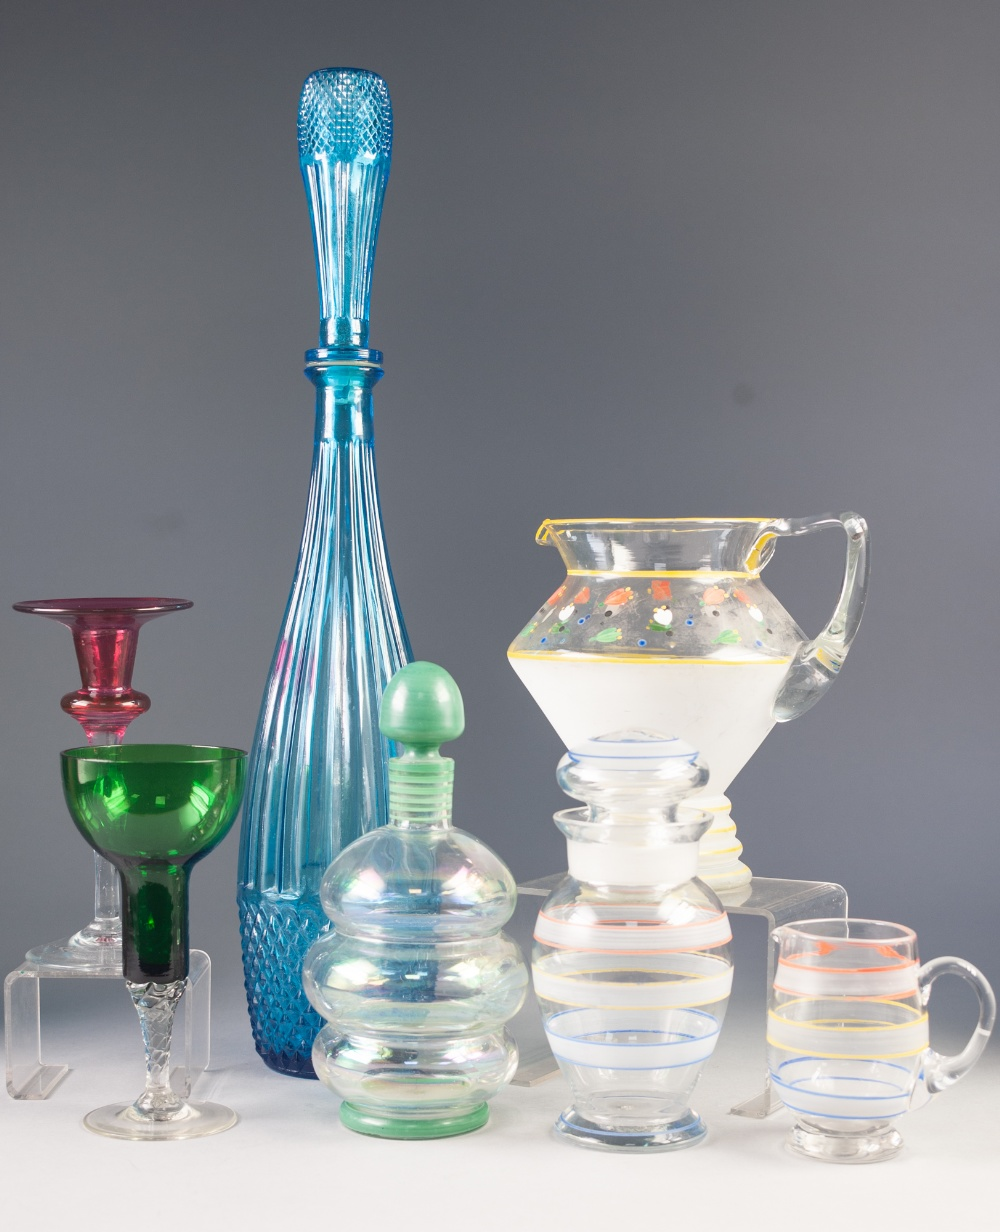 Lot 52 - STYLISH 1950's IRIDESCENT GLASS DECANTER AND STOPPER, of ribbed form with green enamelled stopper